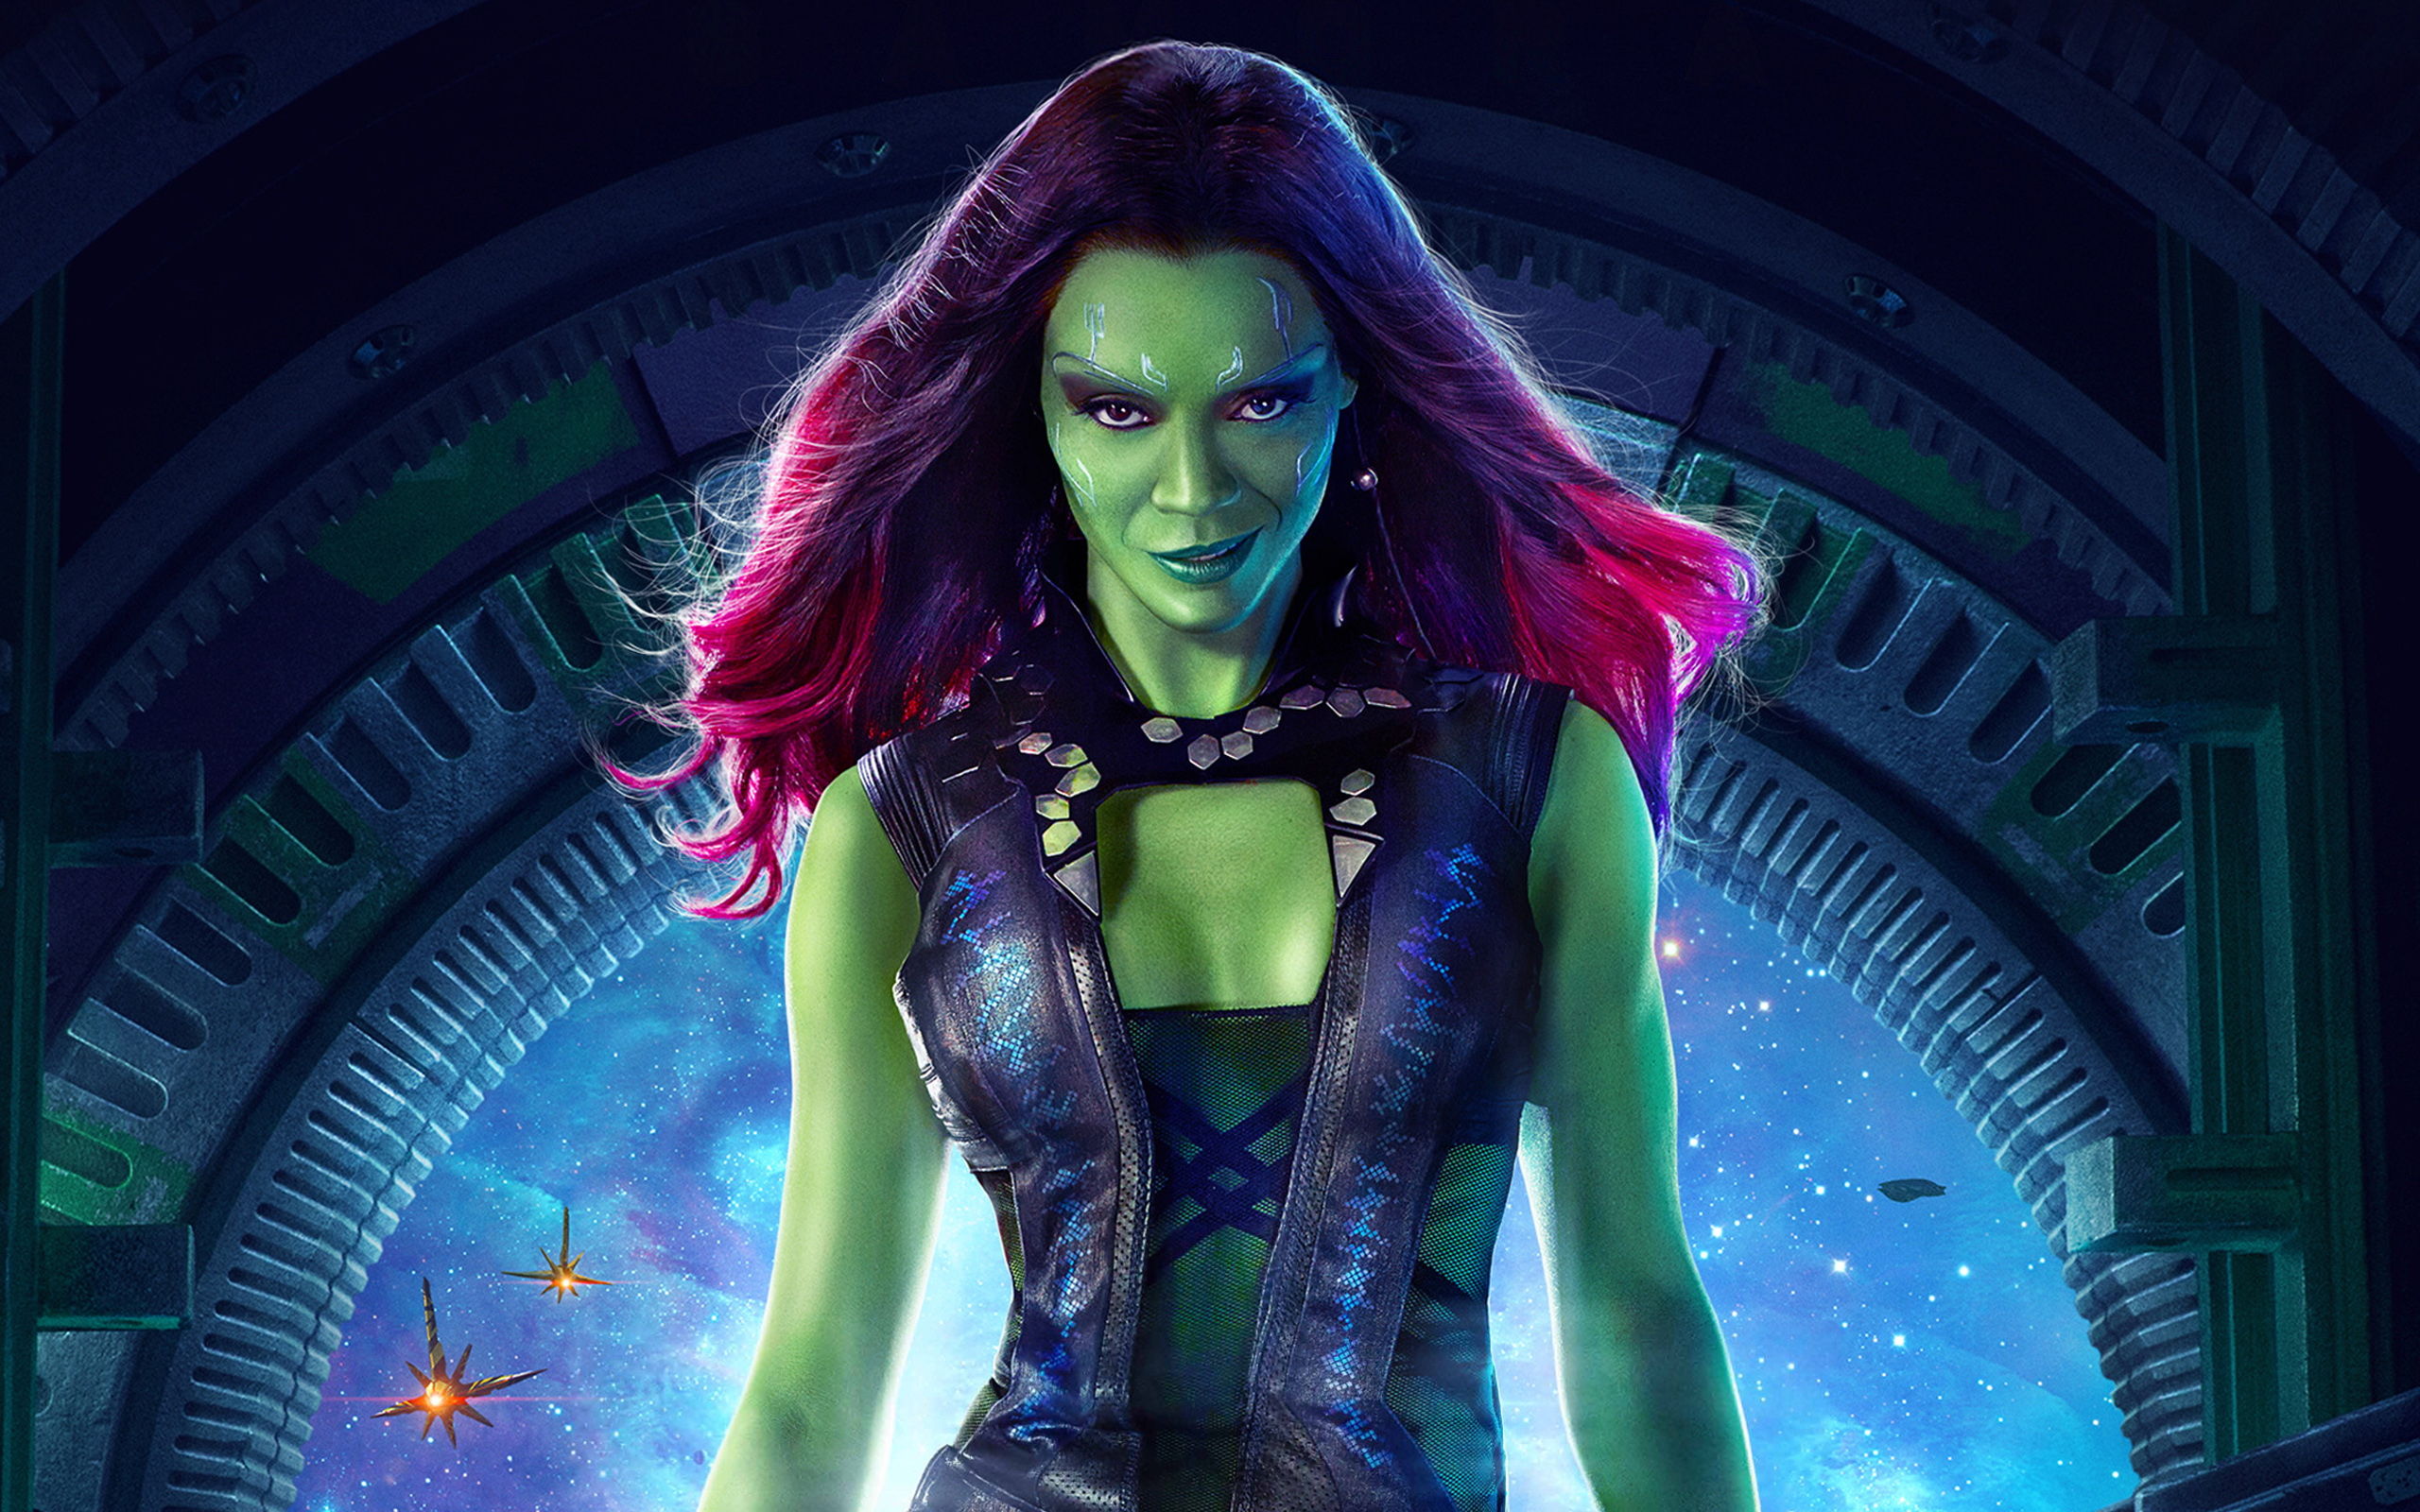 Zoe Saldana As Gamora   Wallpaper High Definition High Quality 2560x1600